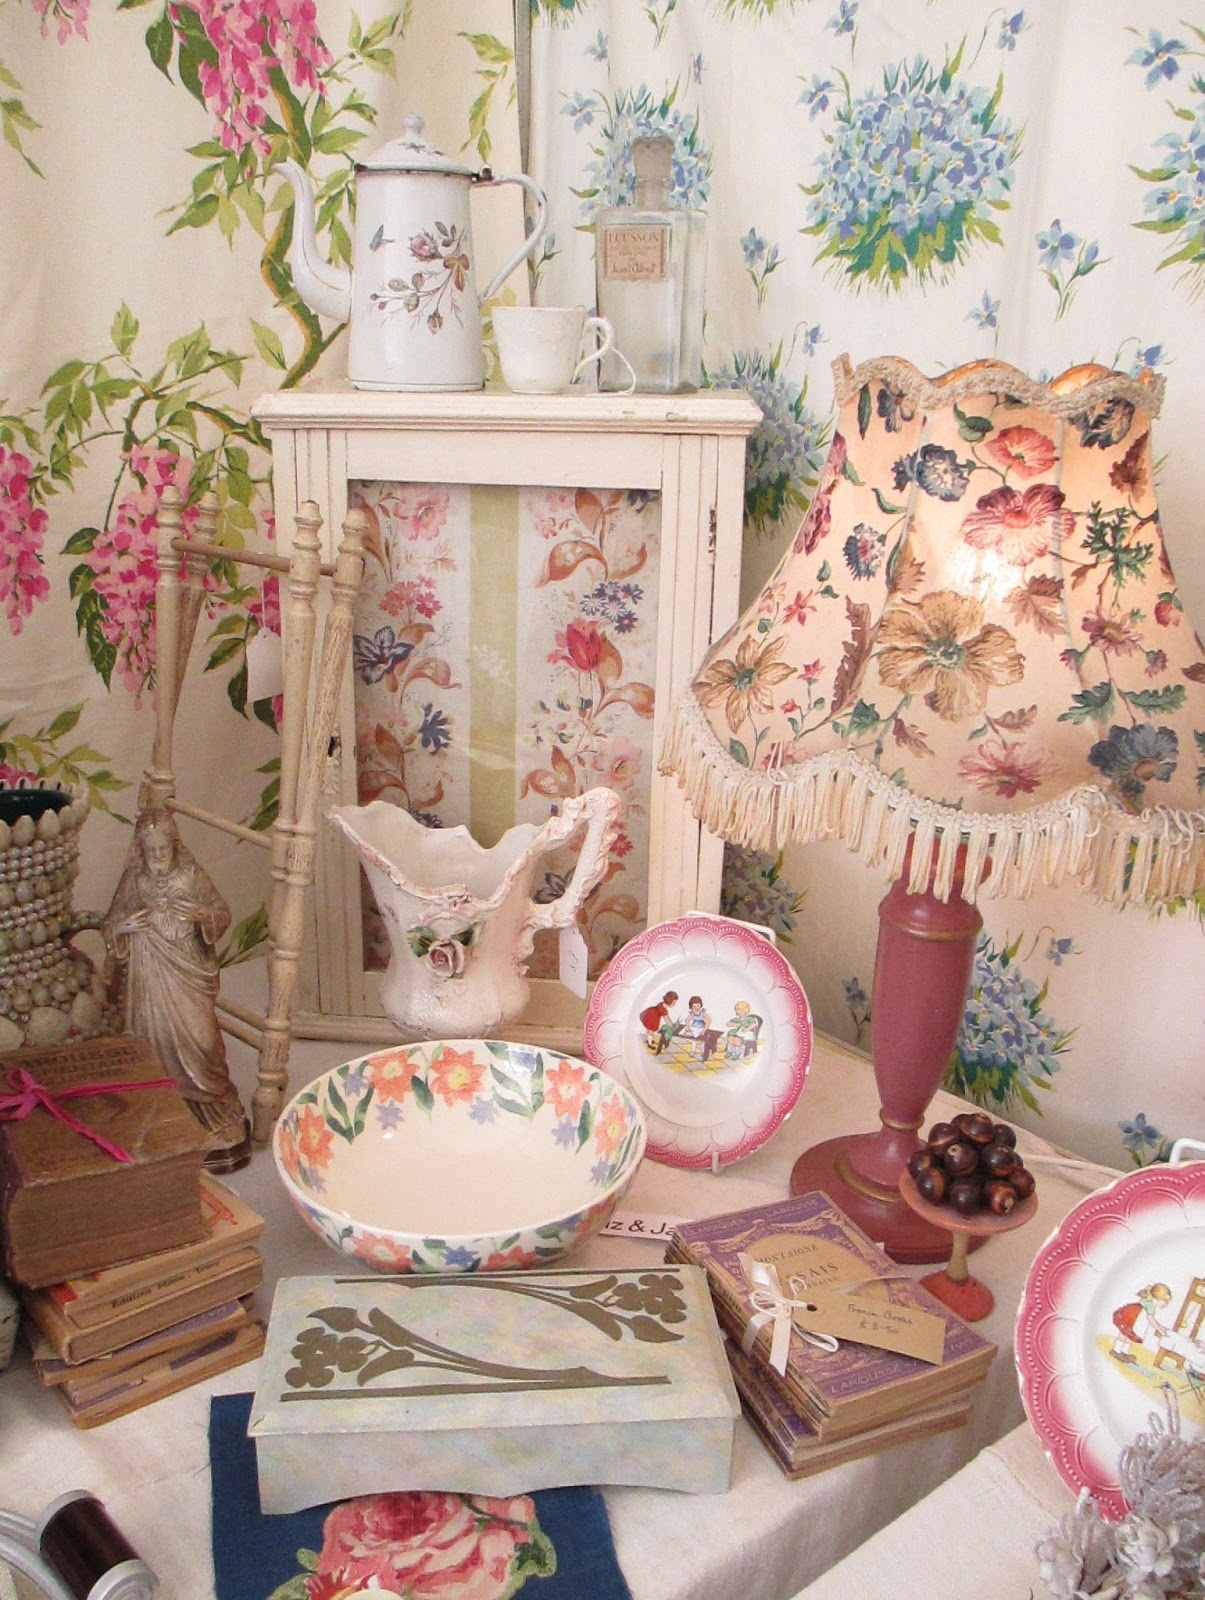 ordinary Living with Decorative Textiles ideas